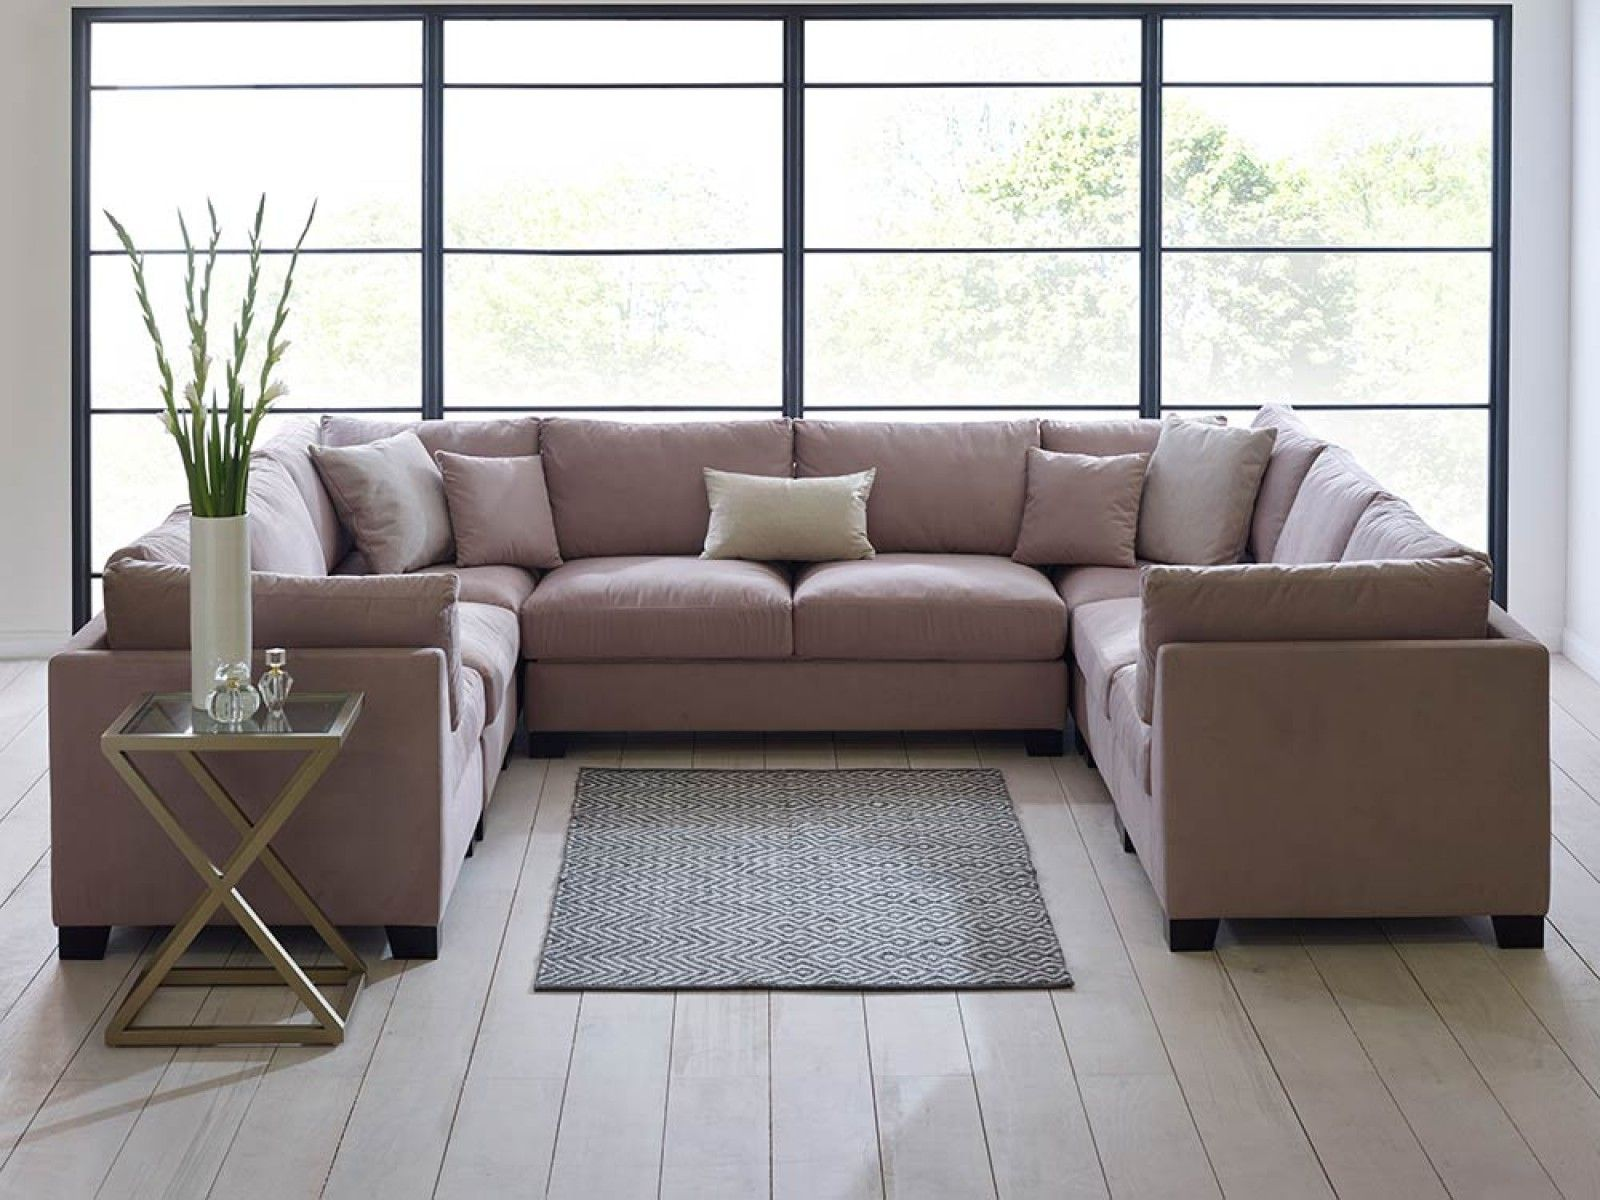 u sofa delaney sleeper reviews shaped google search for the home